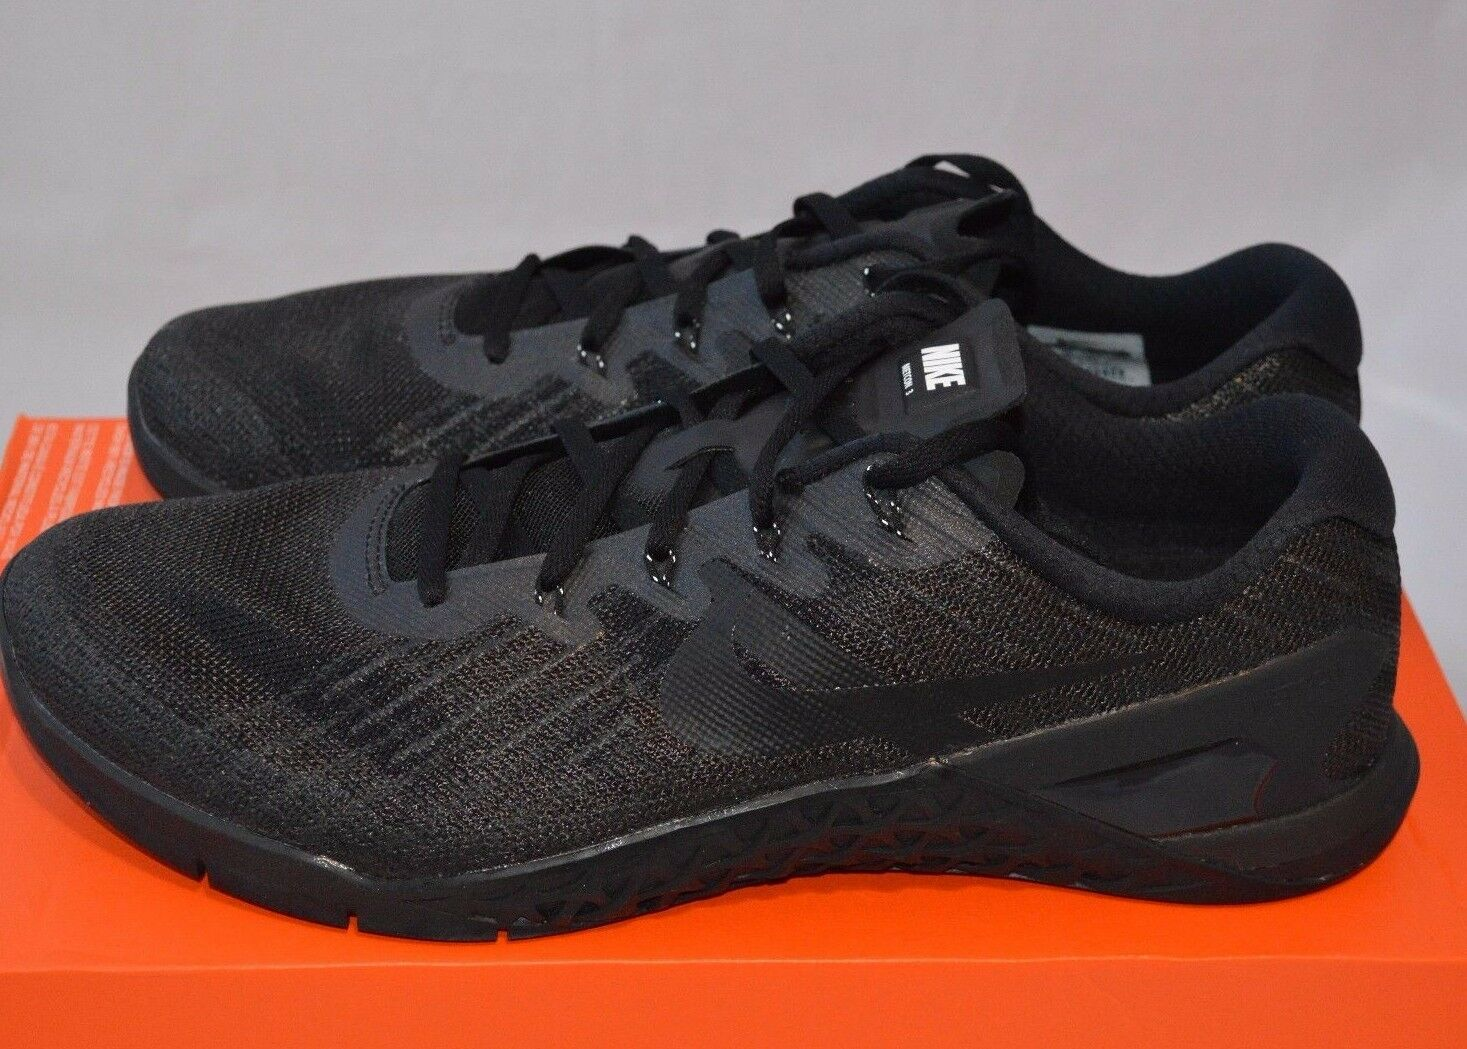 NIKE METCON 3 TB MEN'S TRAINING SHOE [SIZE 13] BLACK/BLACK 898055-003